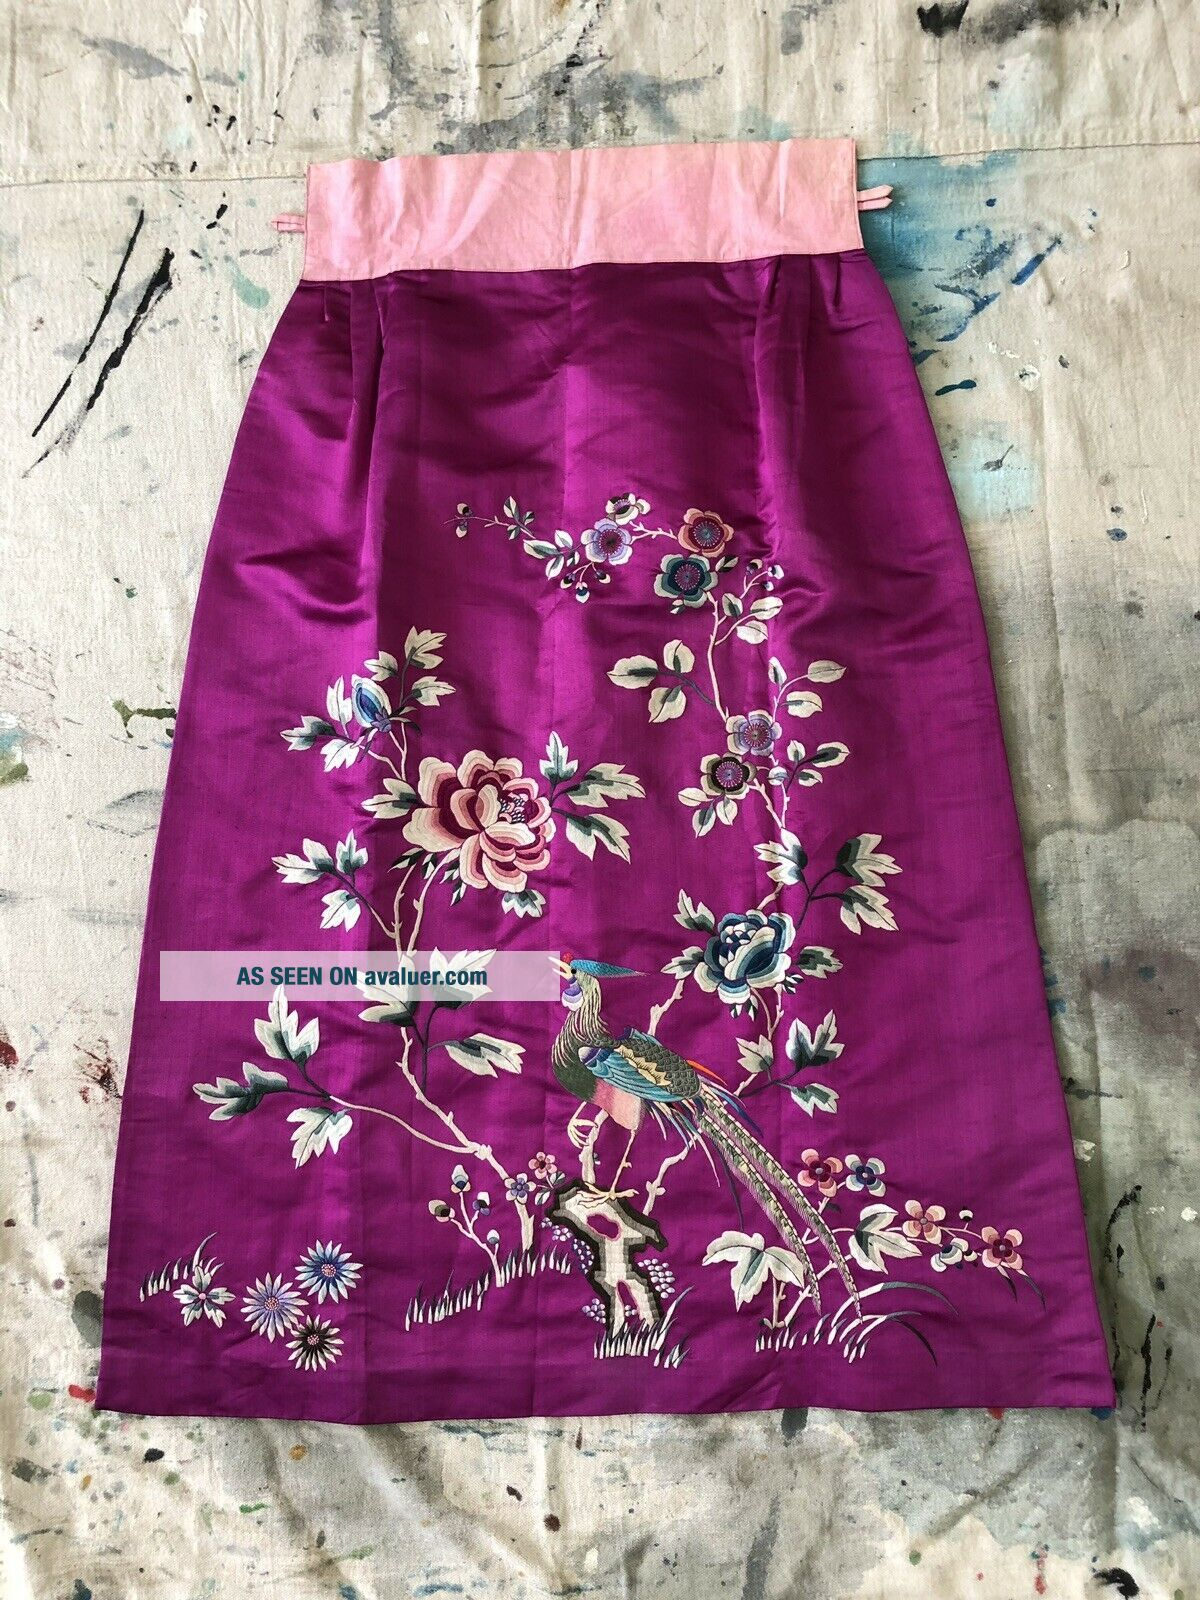 Vintage 1920s 1930s Chinese Purple Silk Floral & Bird Embroidered Skirt Republic